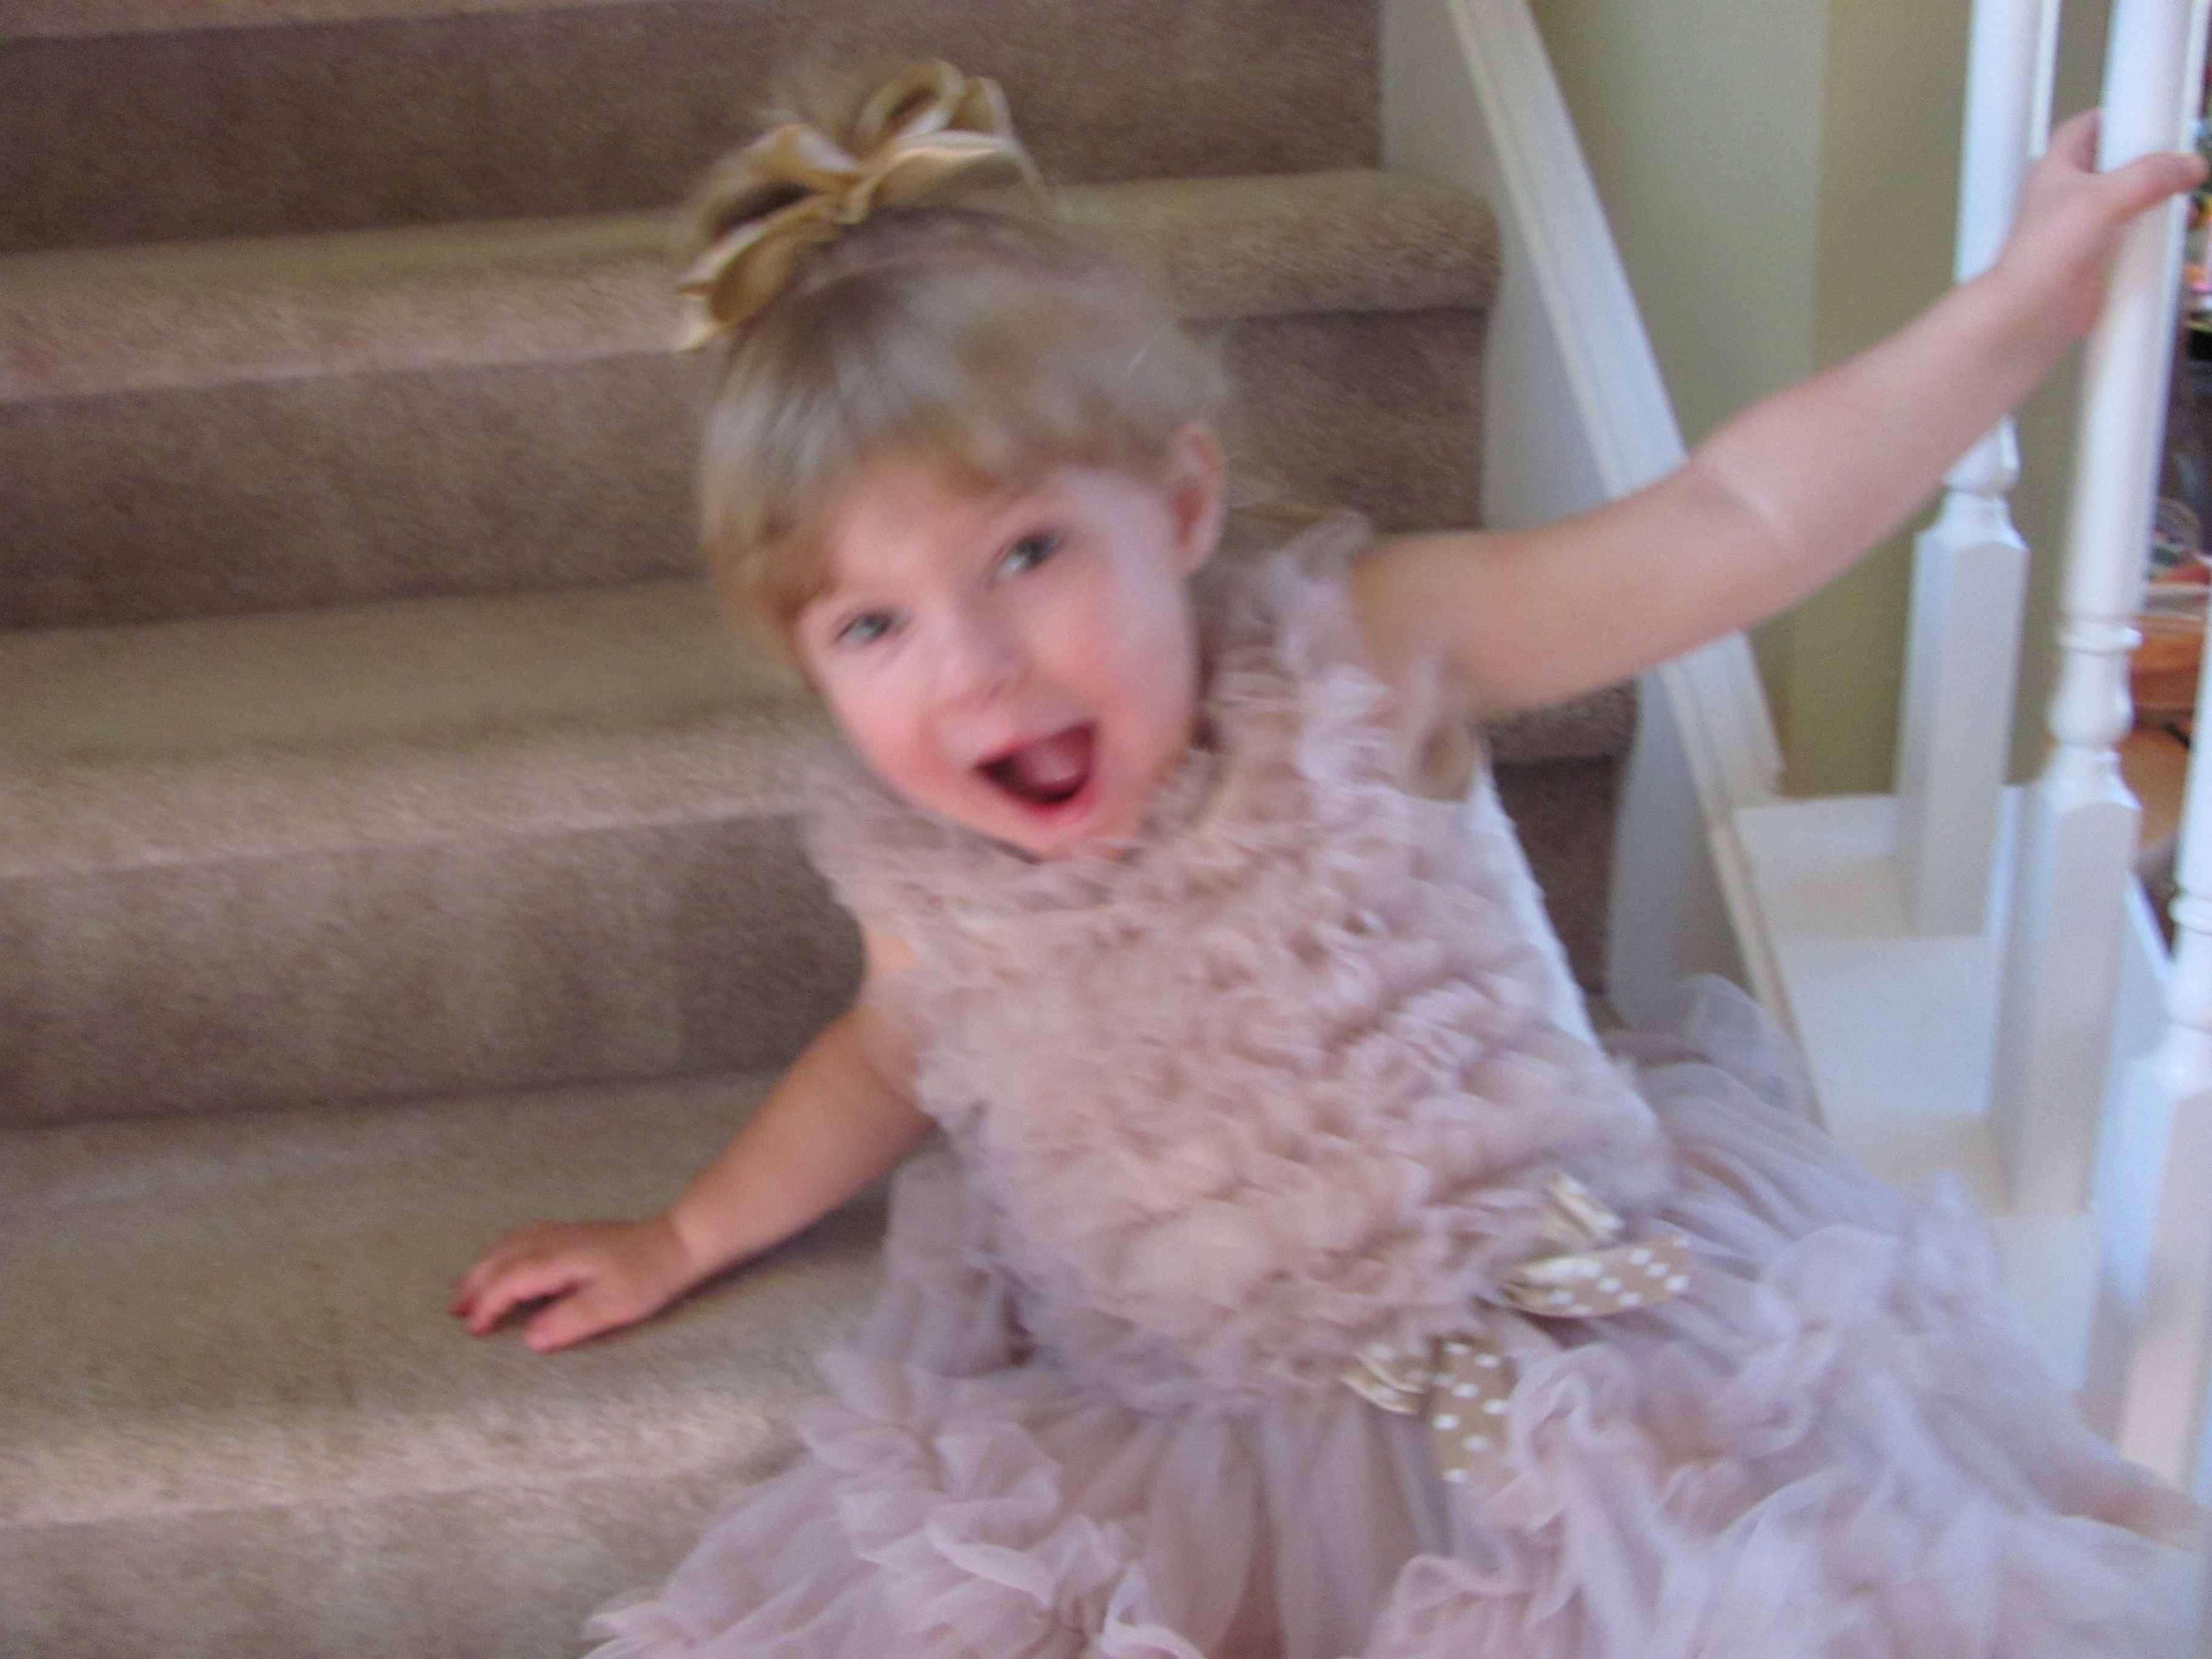 Oh My - My daughter falling down the stairs - Still trying to strike a pose!